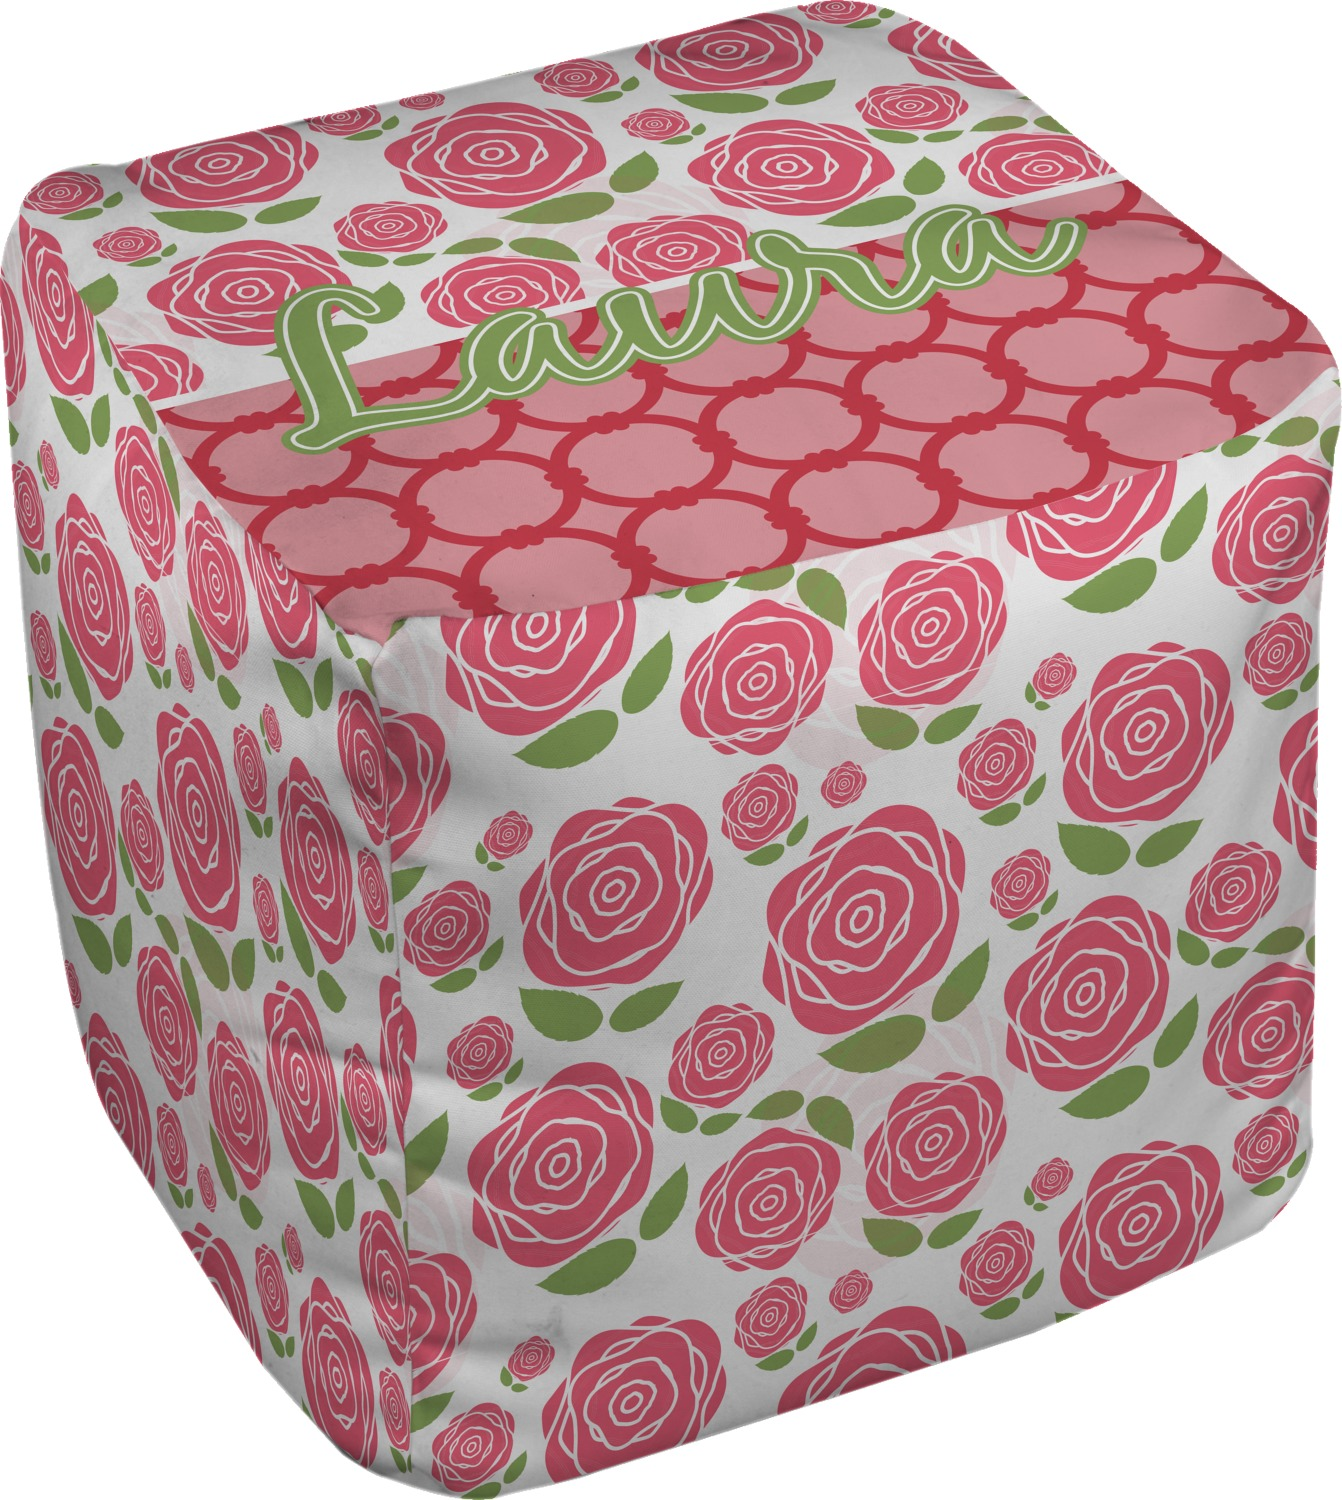 roses cube pouf ottoman 18 personalized you customize it. Black Bedroom Furniture Sets. Home Design Ideas